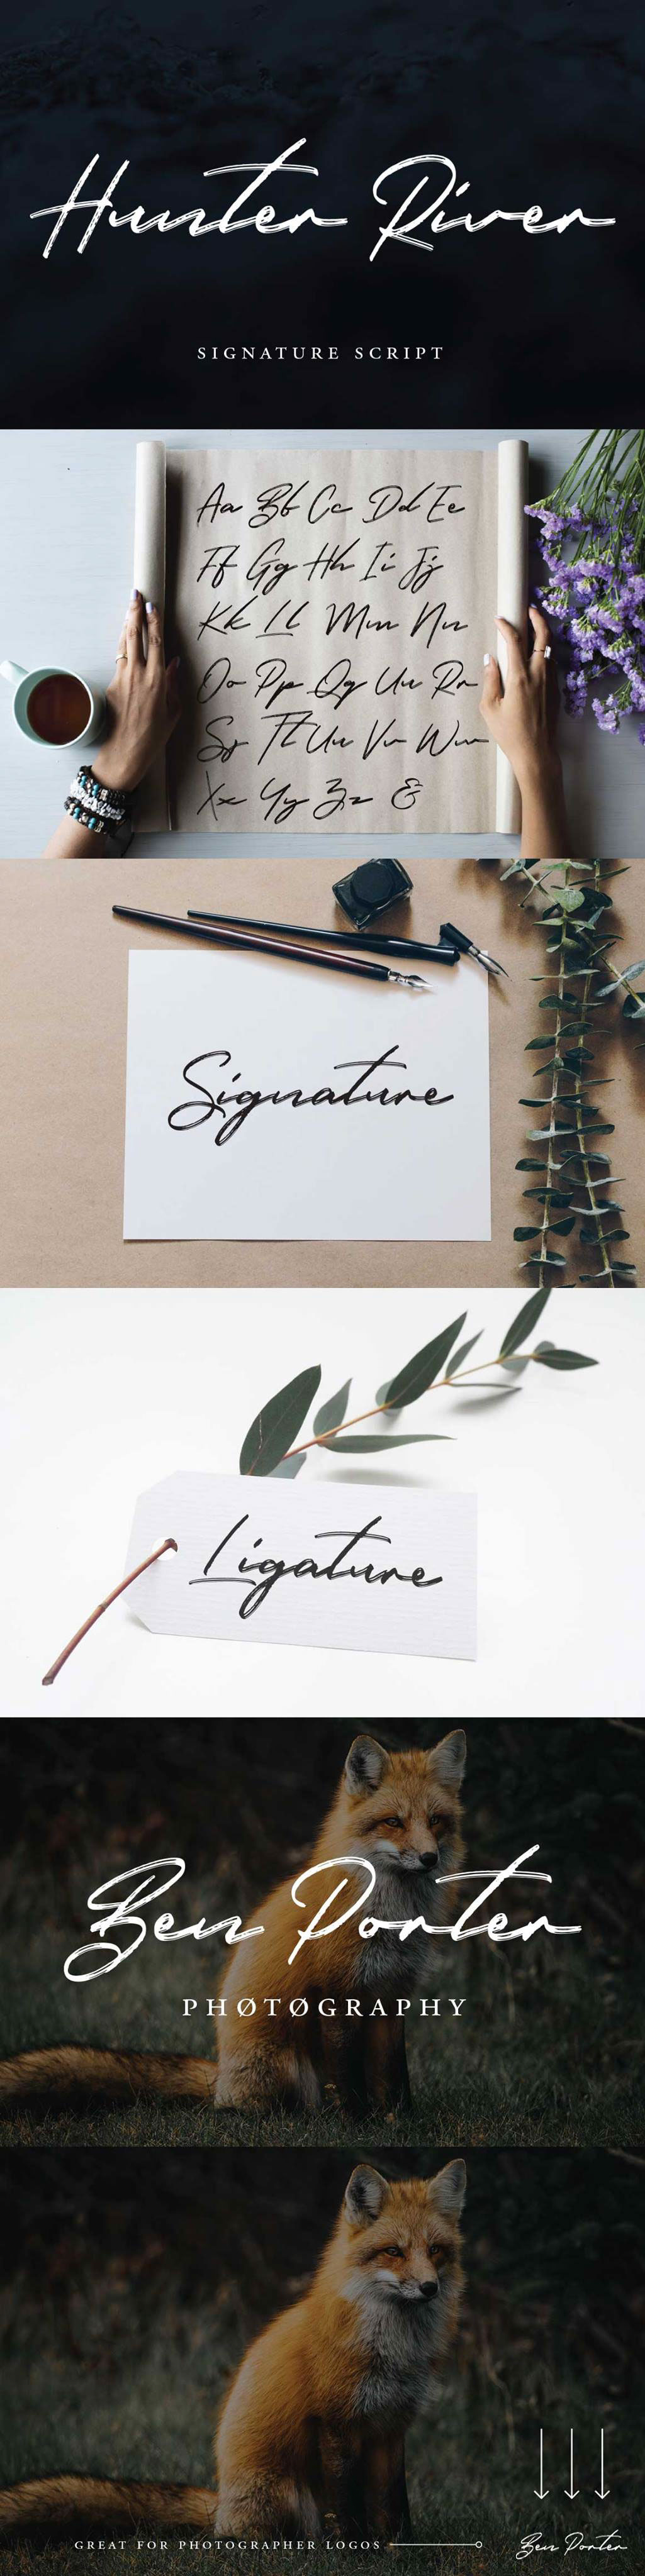 free Free font free fonts freebie Script logo signature type Typeface commercial